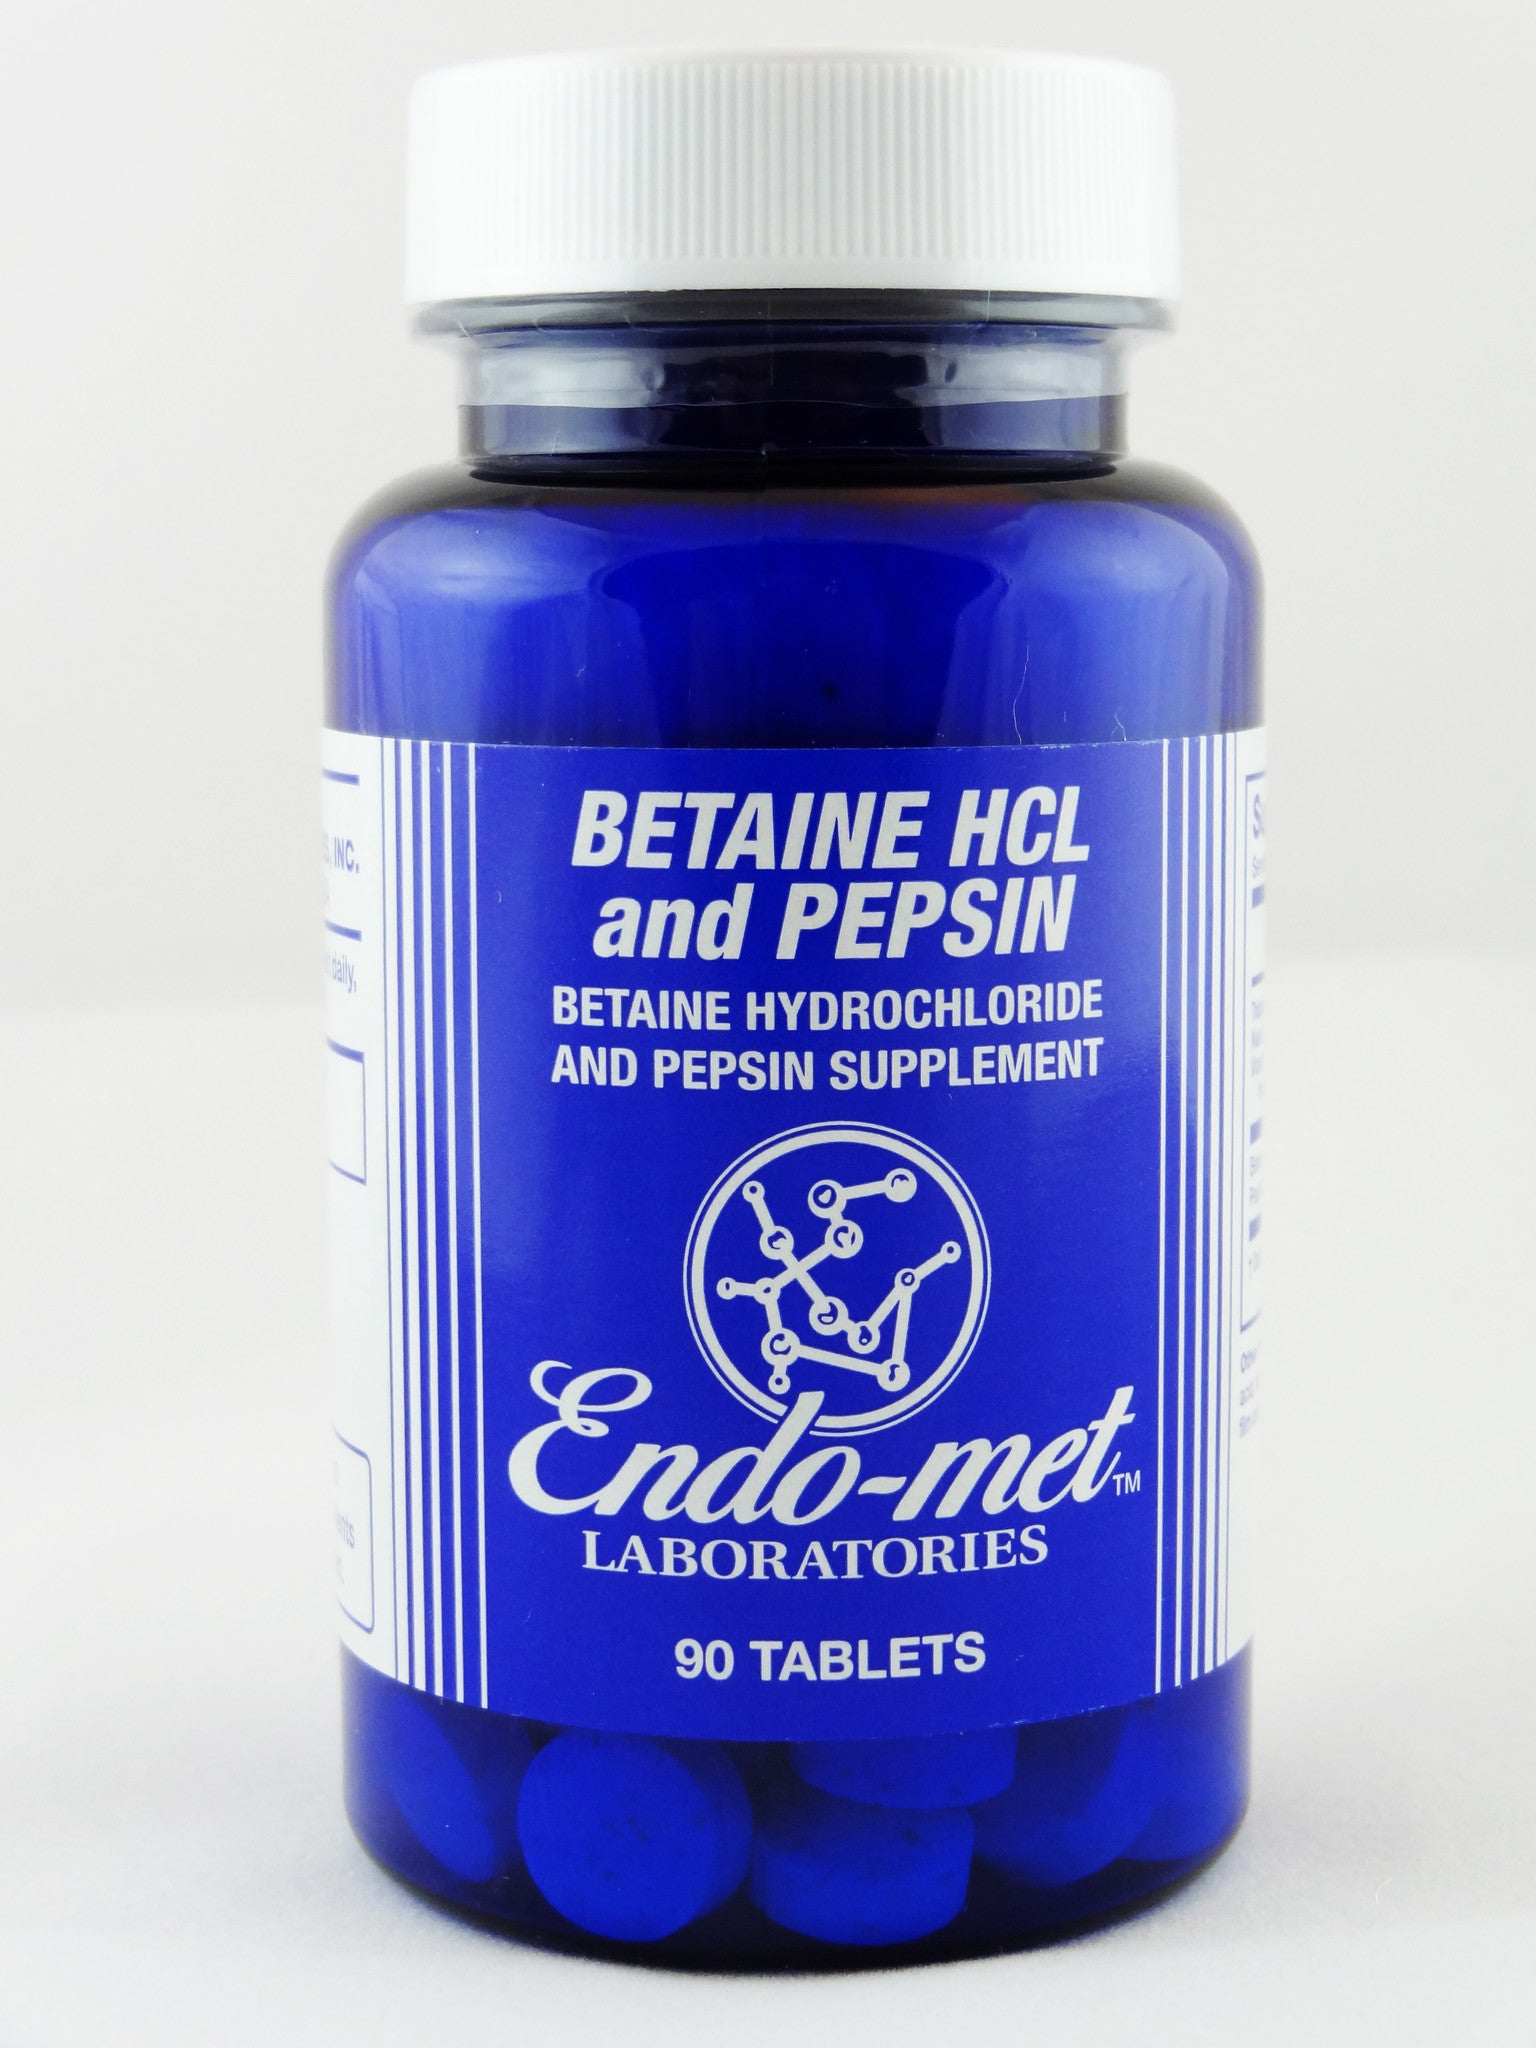 Betaine HCL and Pepsin (Discontinued by Endo-met)